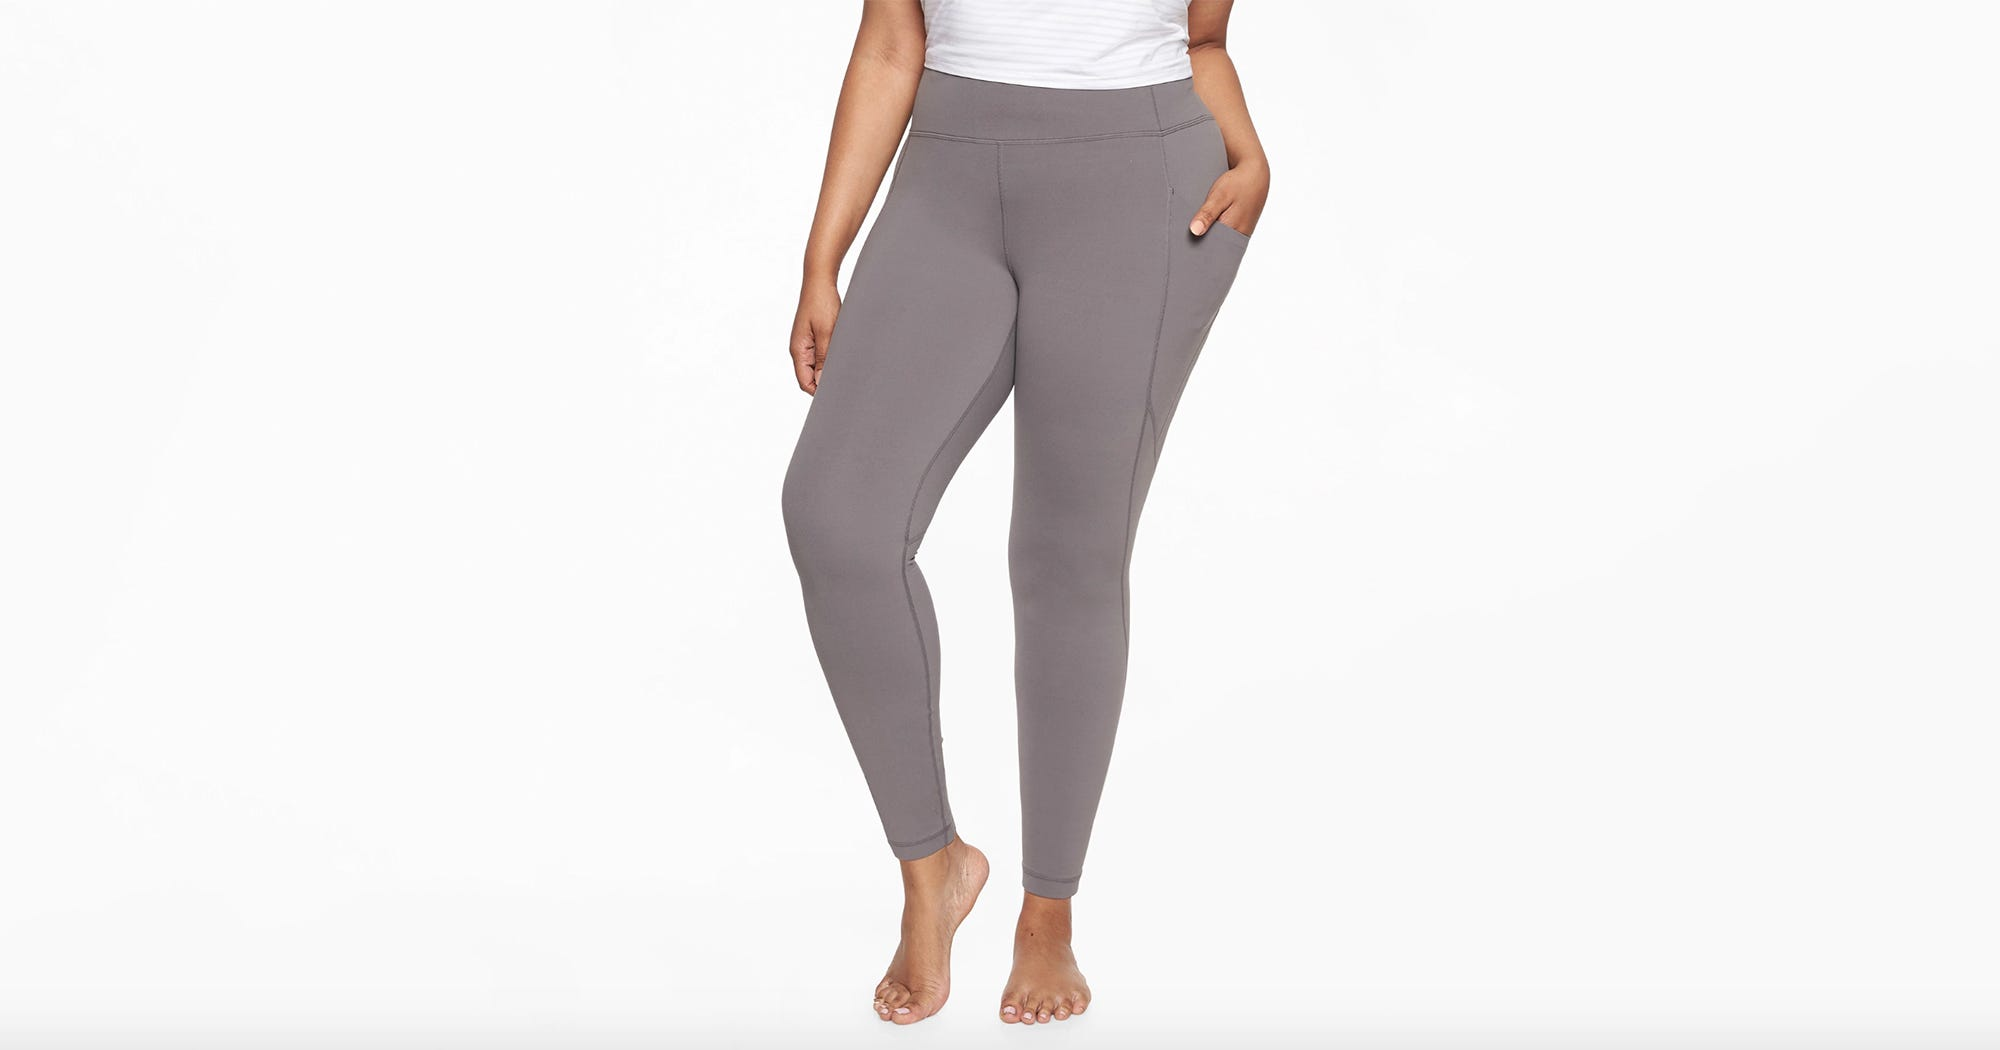 7b4b56310b16c Workout Leggings With Pockets On The Side For Phone